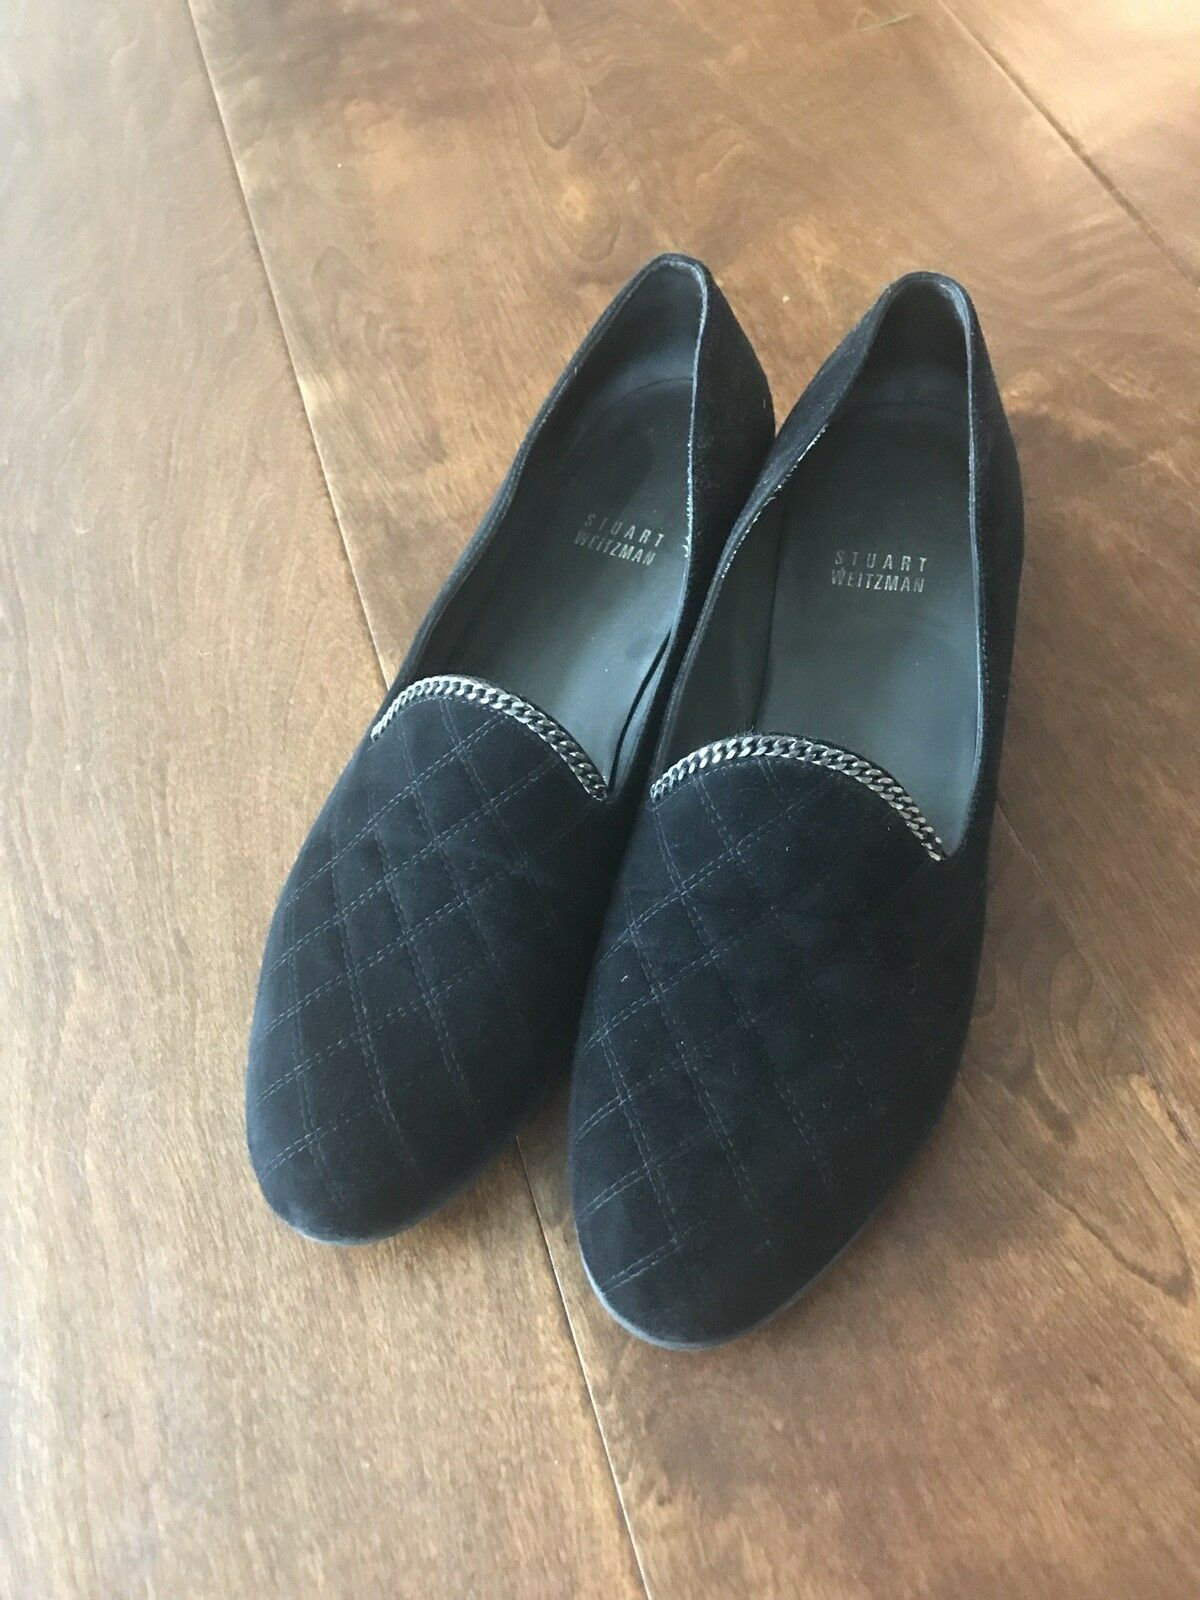 Sconto del 70% STUART WEITZMAN scarpe Low Heels Loafers Loafers Loafers Suede nero Donna  US 9  acquista online oggi